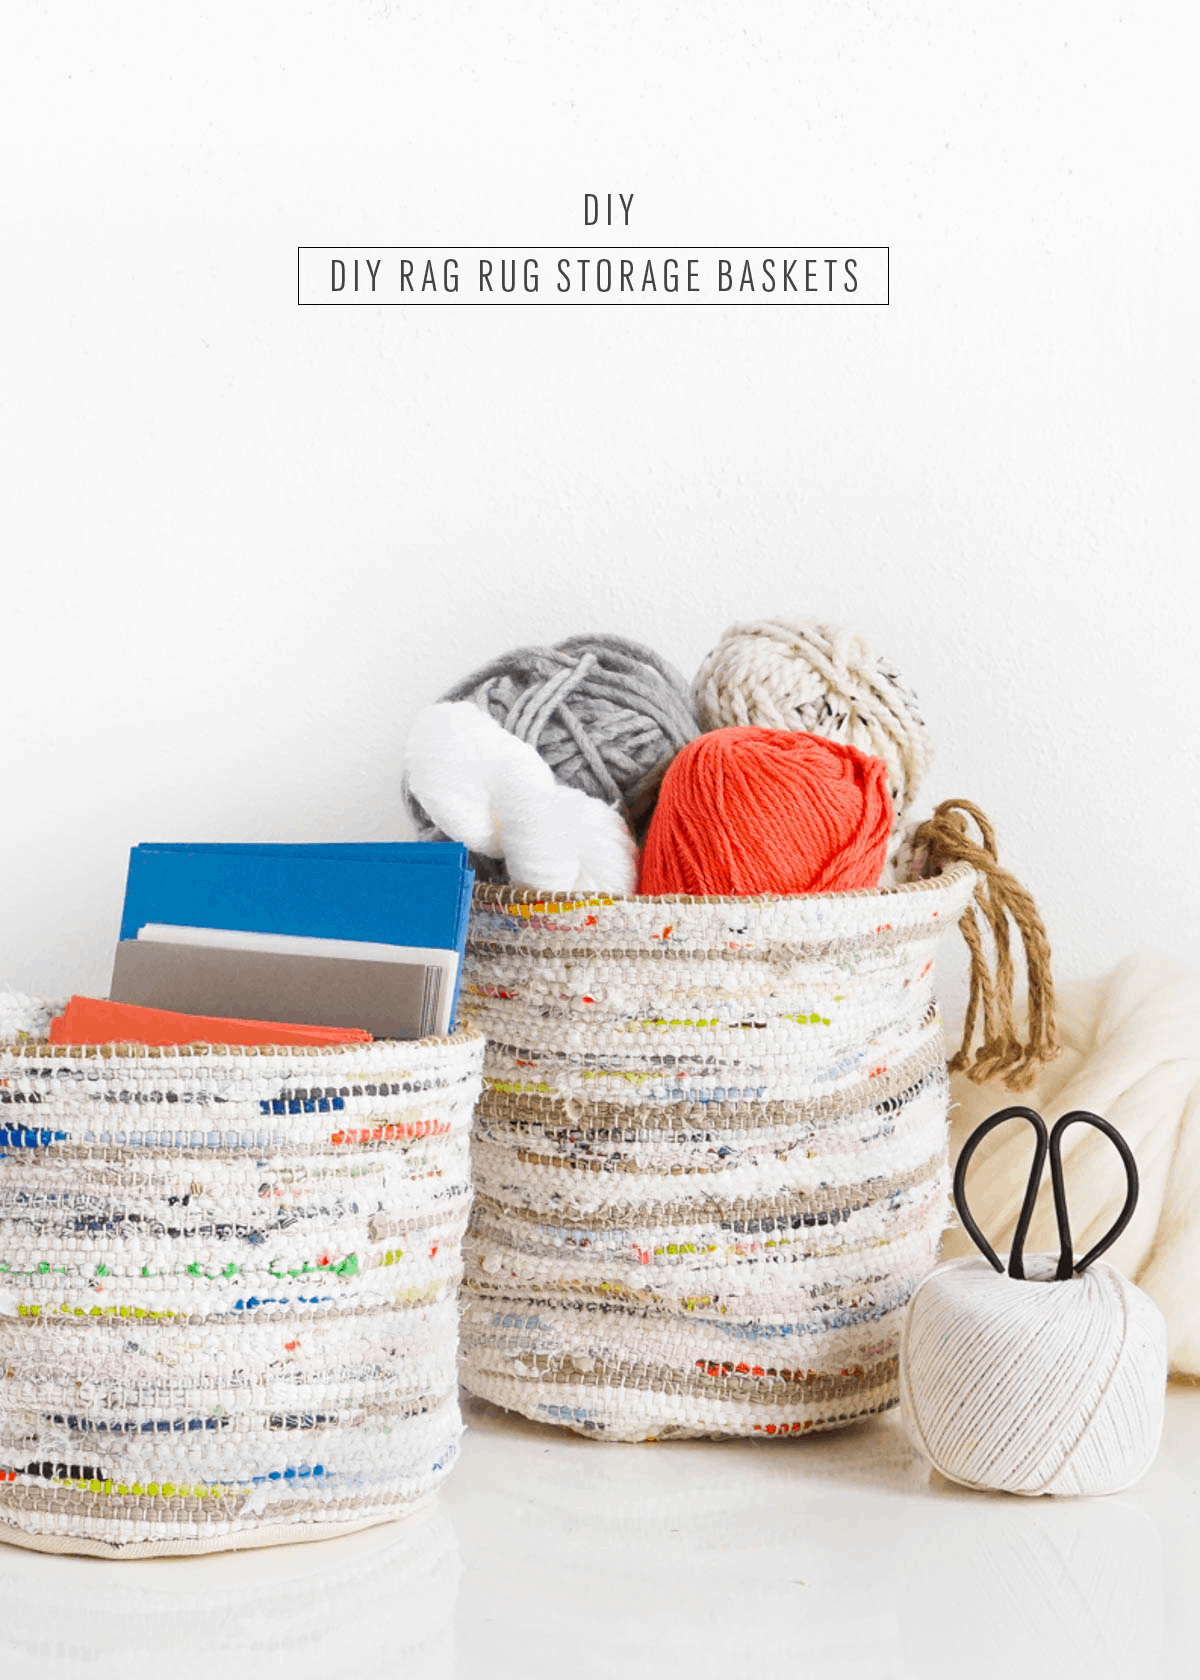 Diy Rag Rug Storage Baskets By Sugar Cloth An Award Winning Home